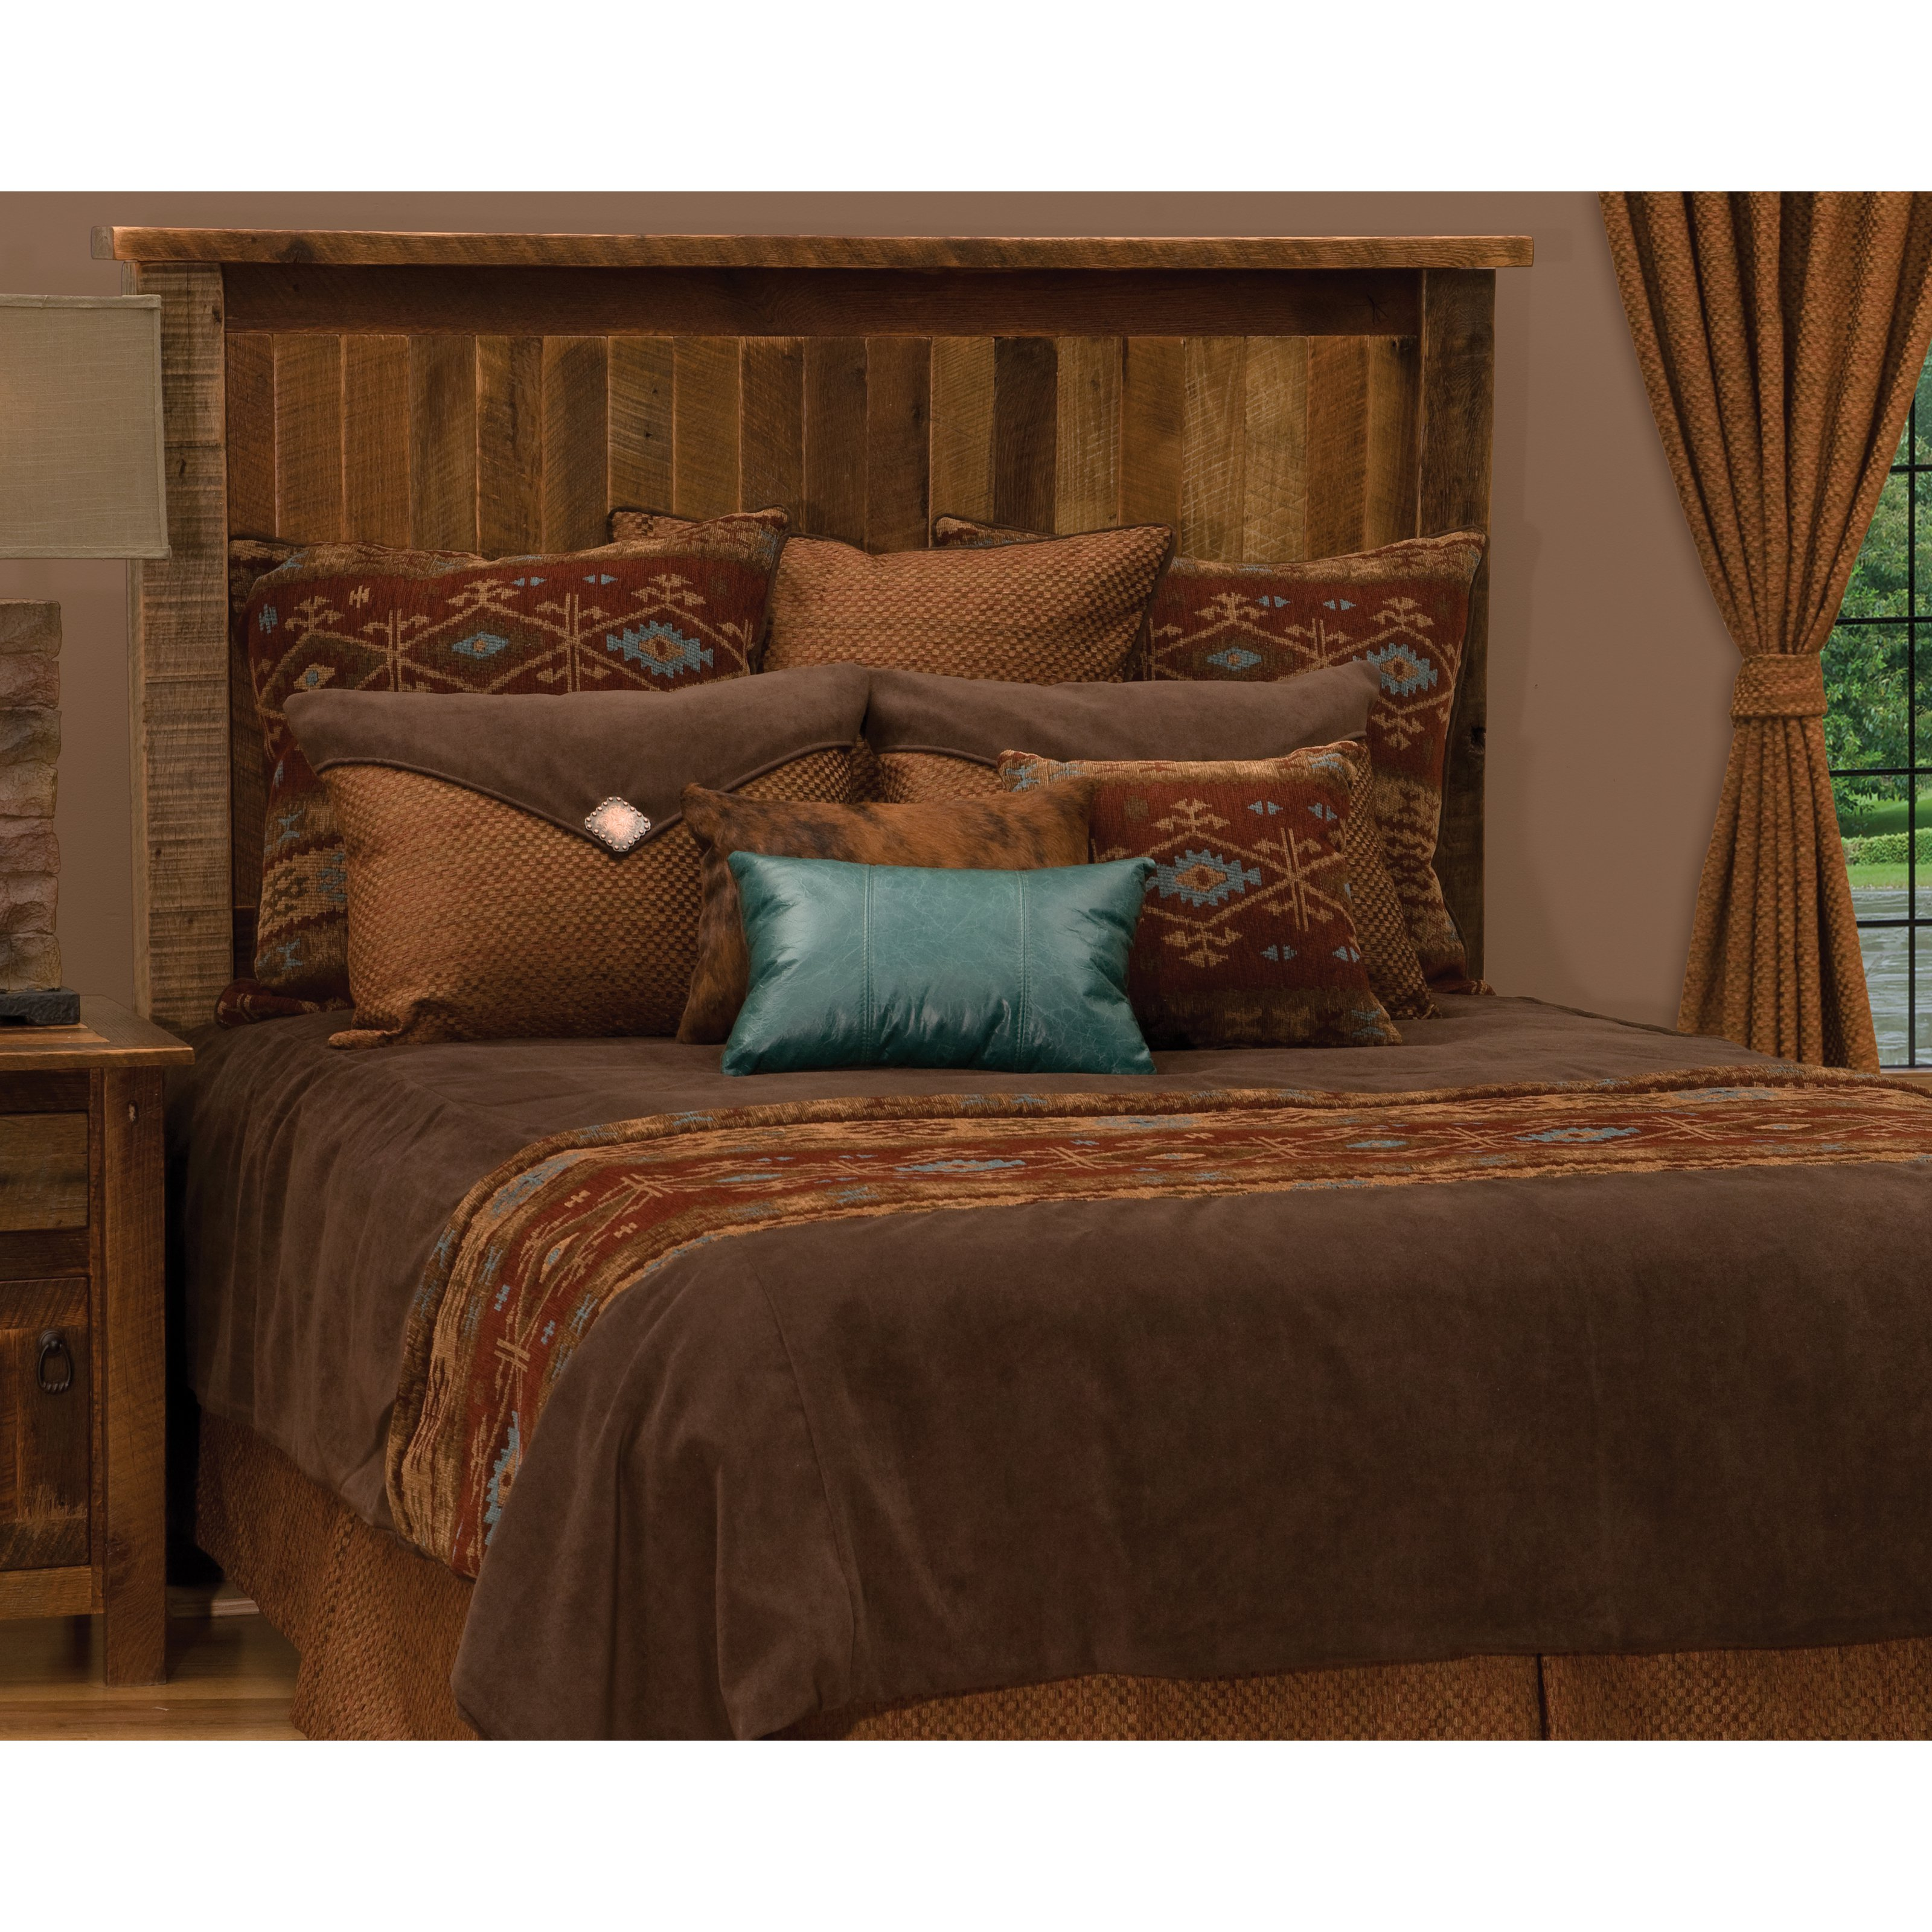 Mountain Sierra Bedding Set by Wooded River